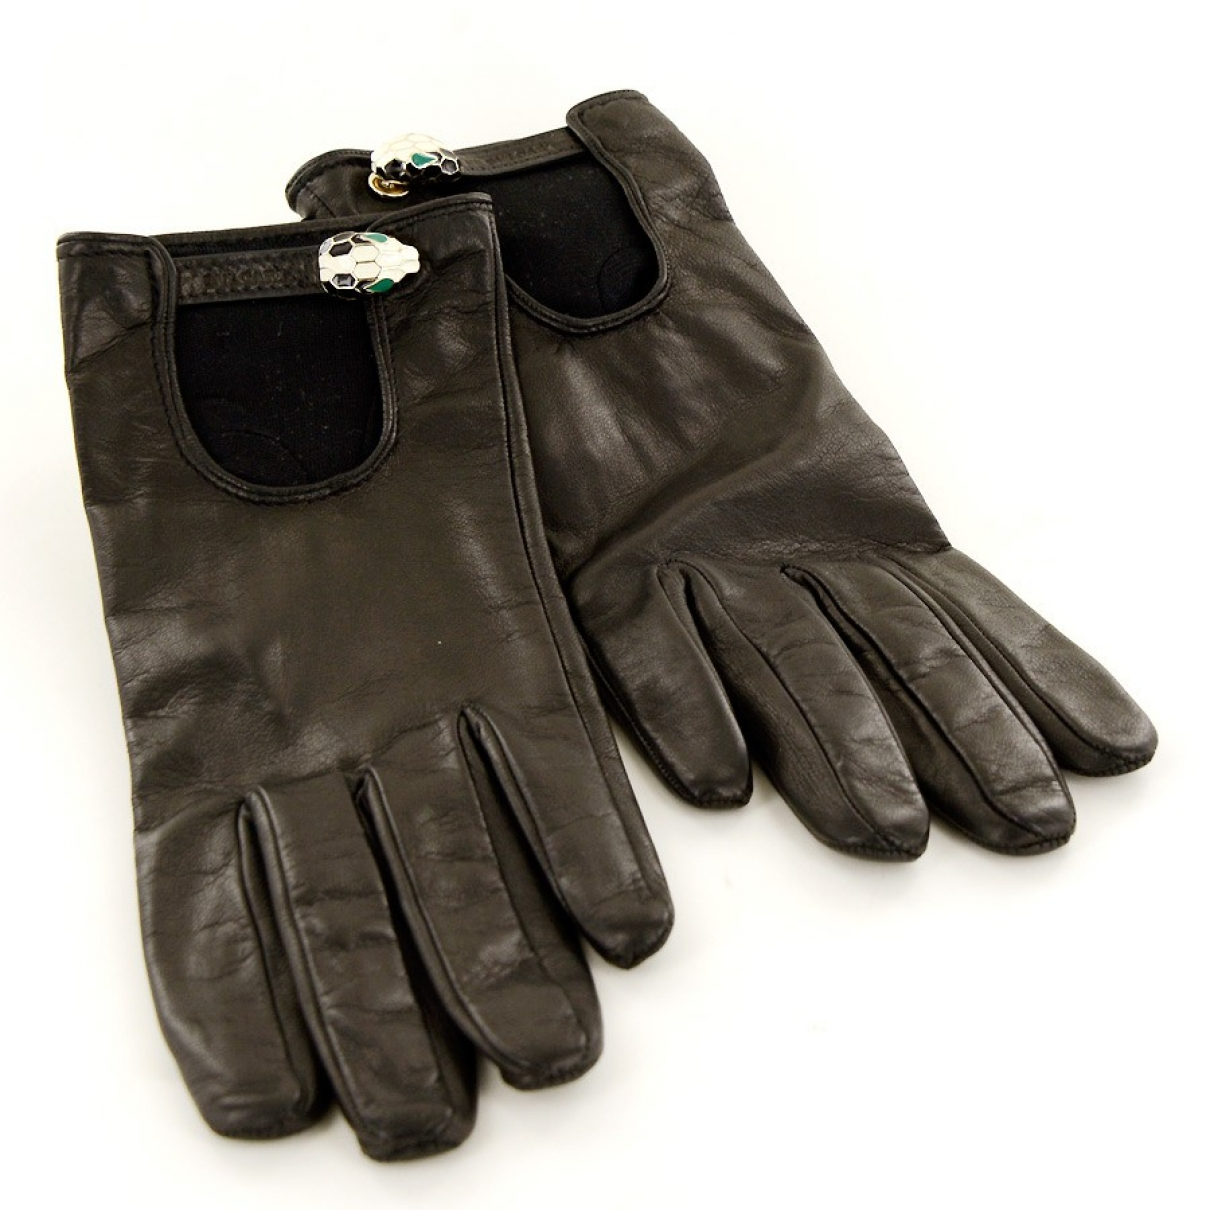 Bvlgari \N Black Leather Gloves for Women S International